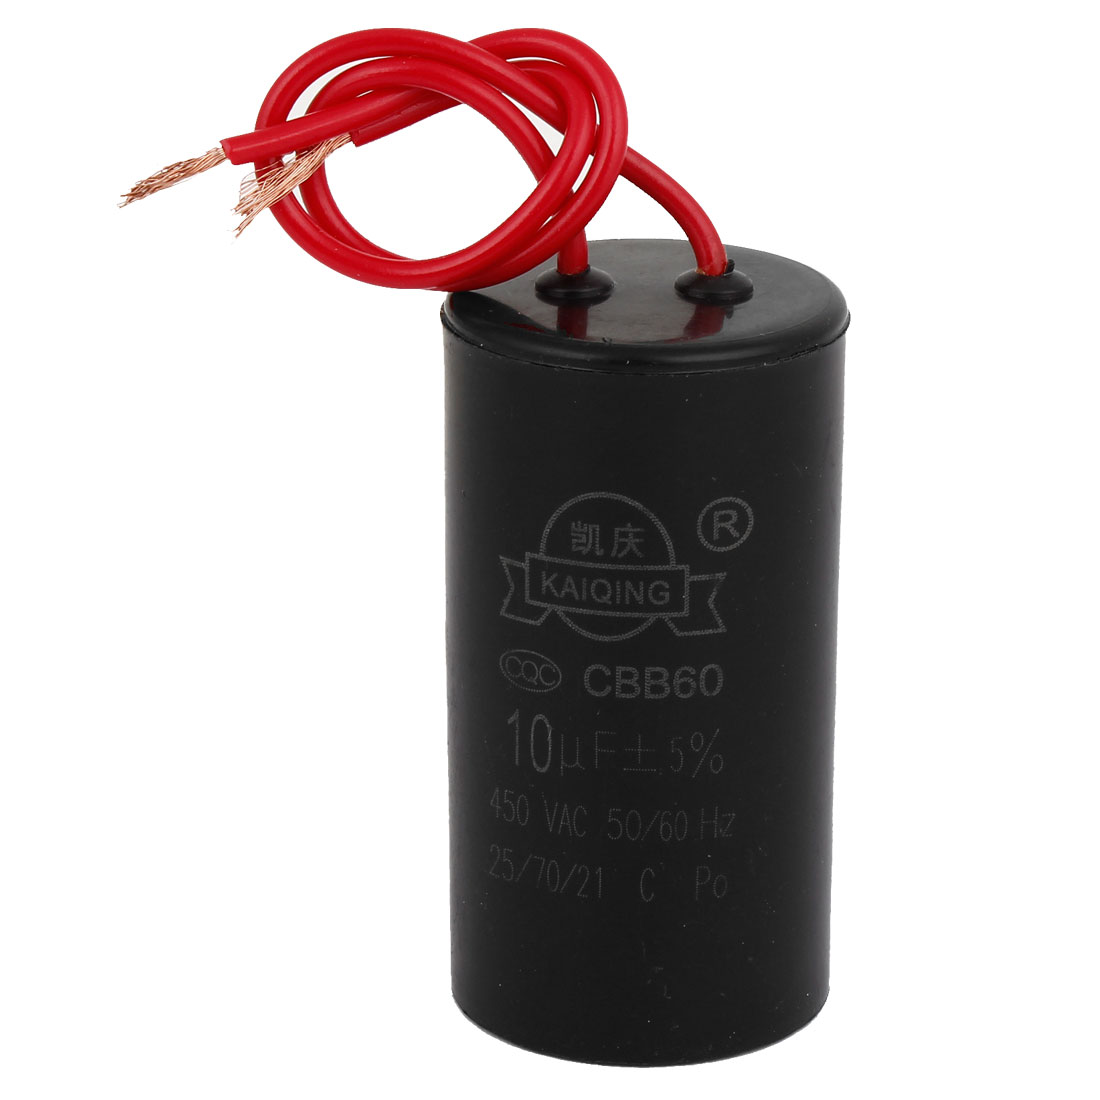 CBB60 10uF 5% Wired Capacitance Motor Star-up Capacitor AC450V 50/60Hz